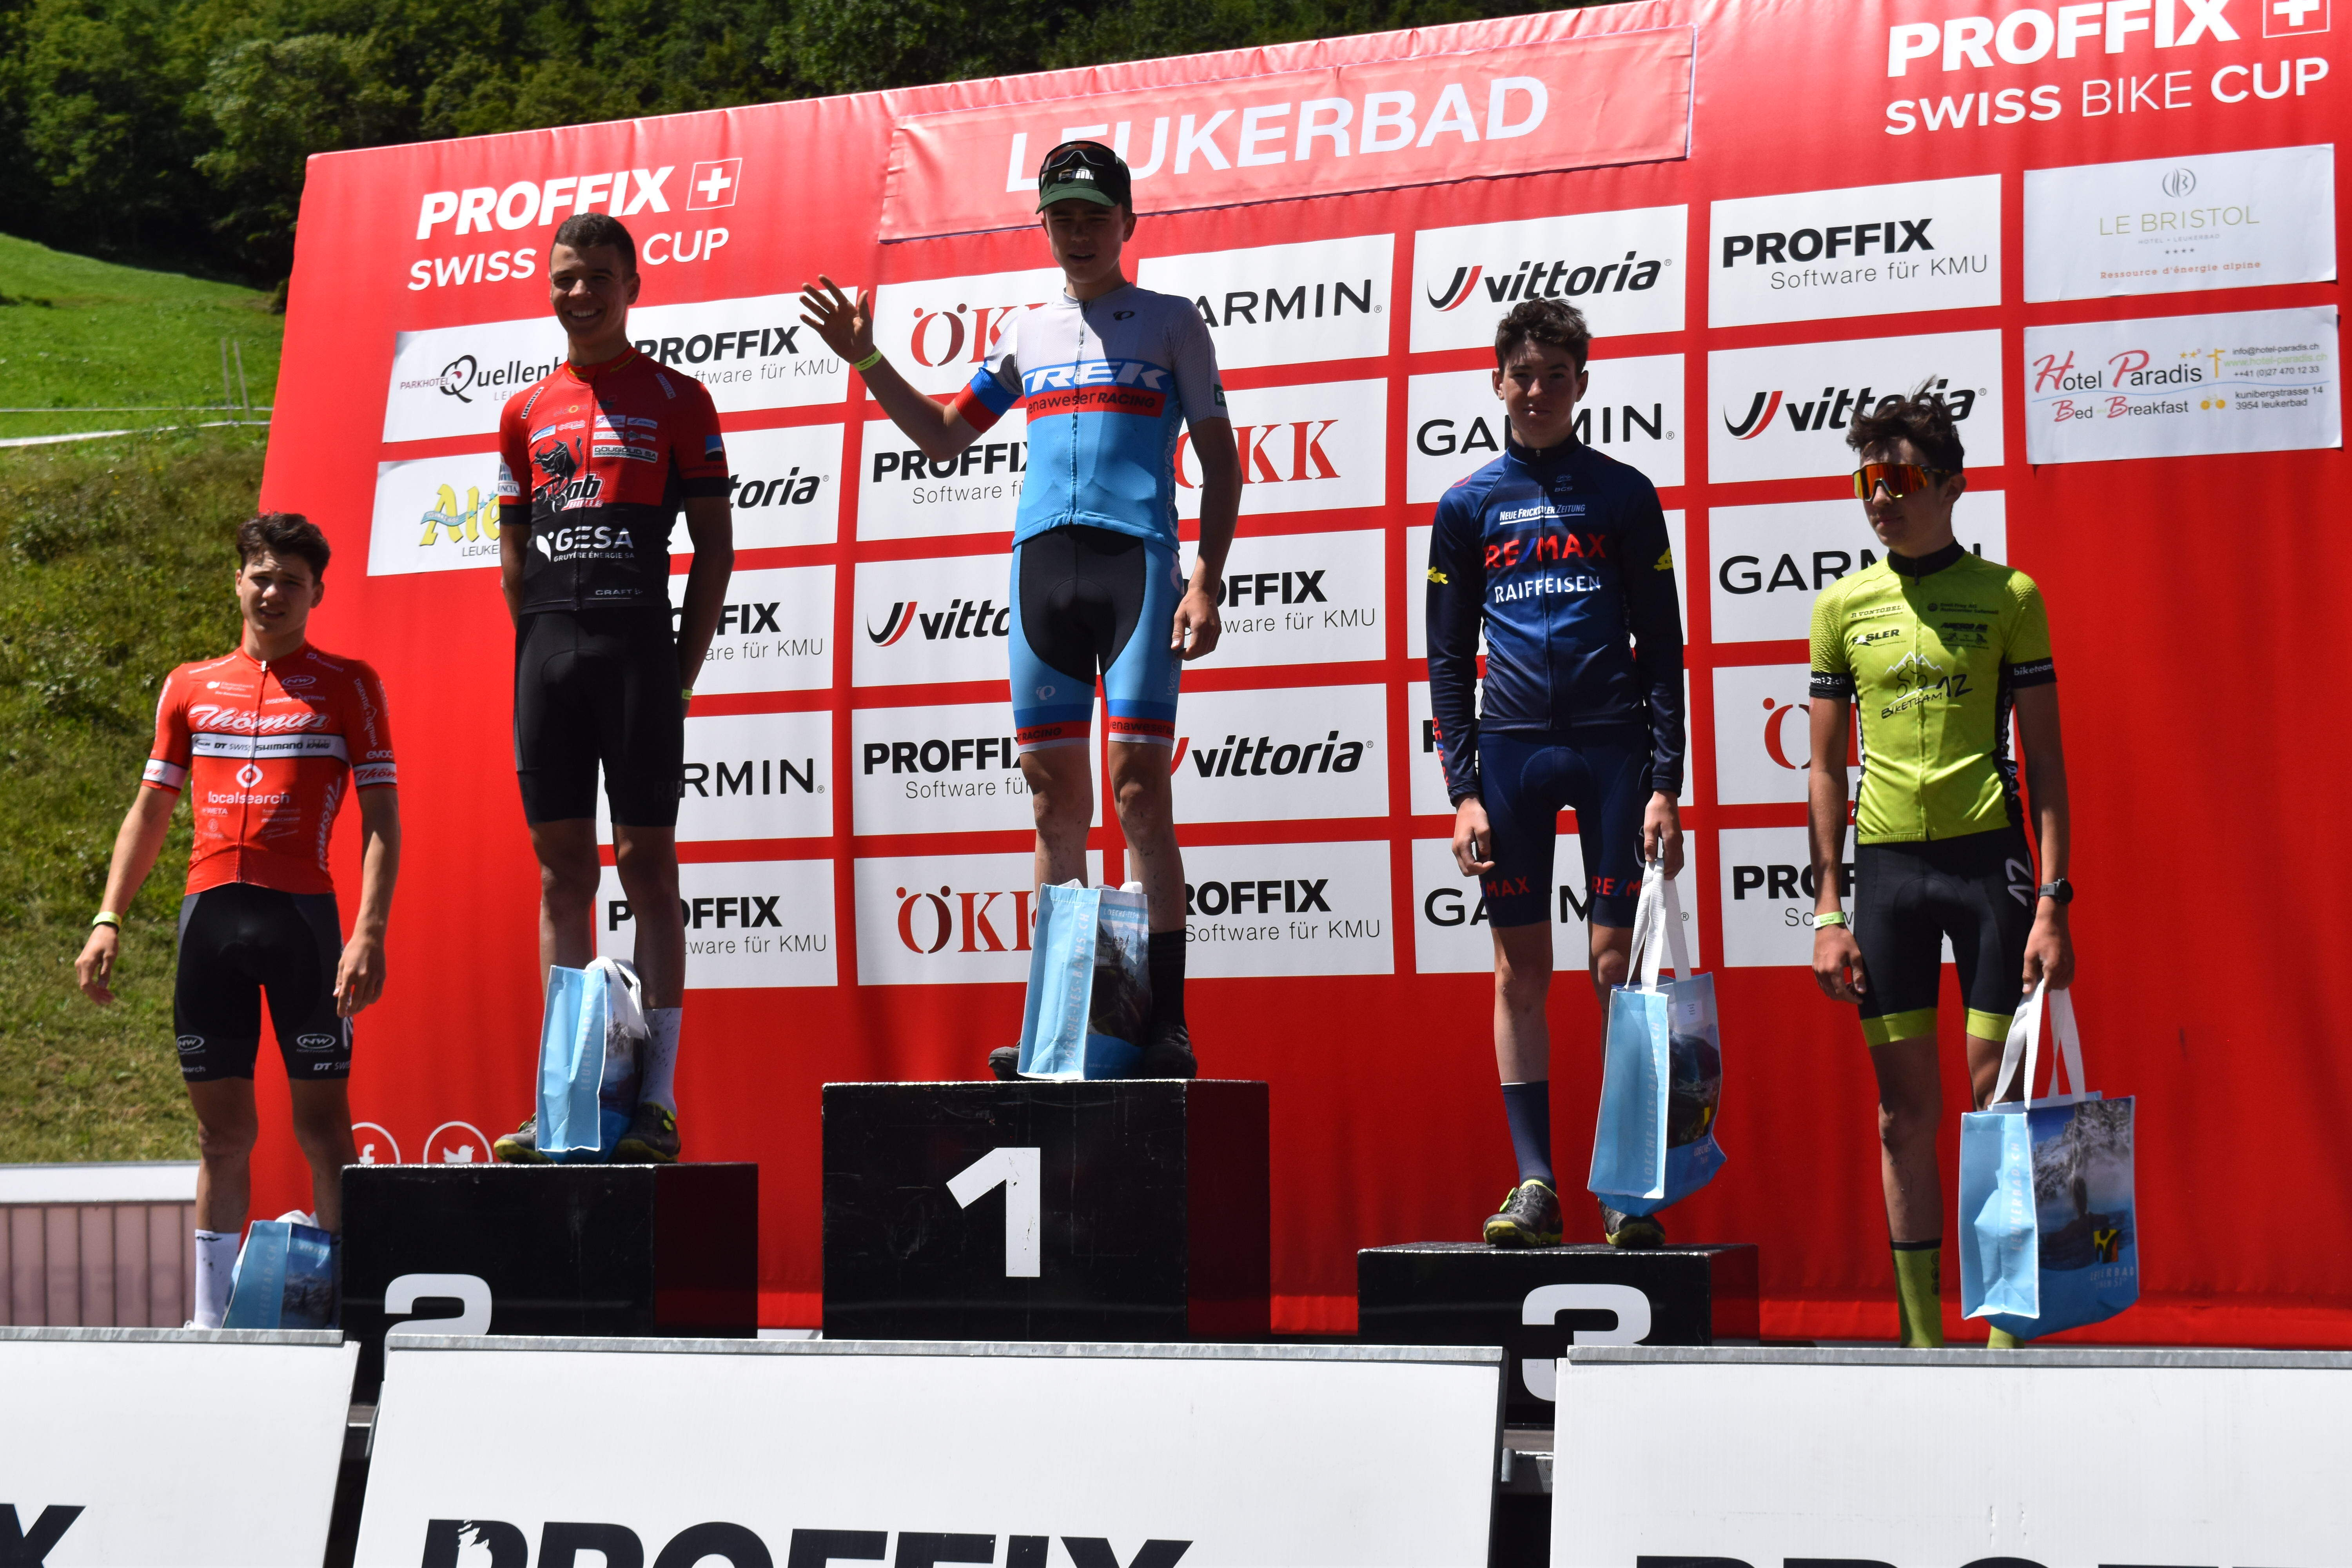 Proffix Swiss Bikecup in Leukerbad